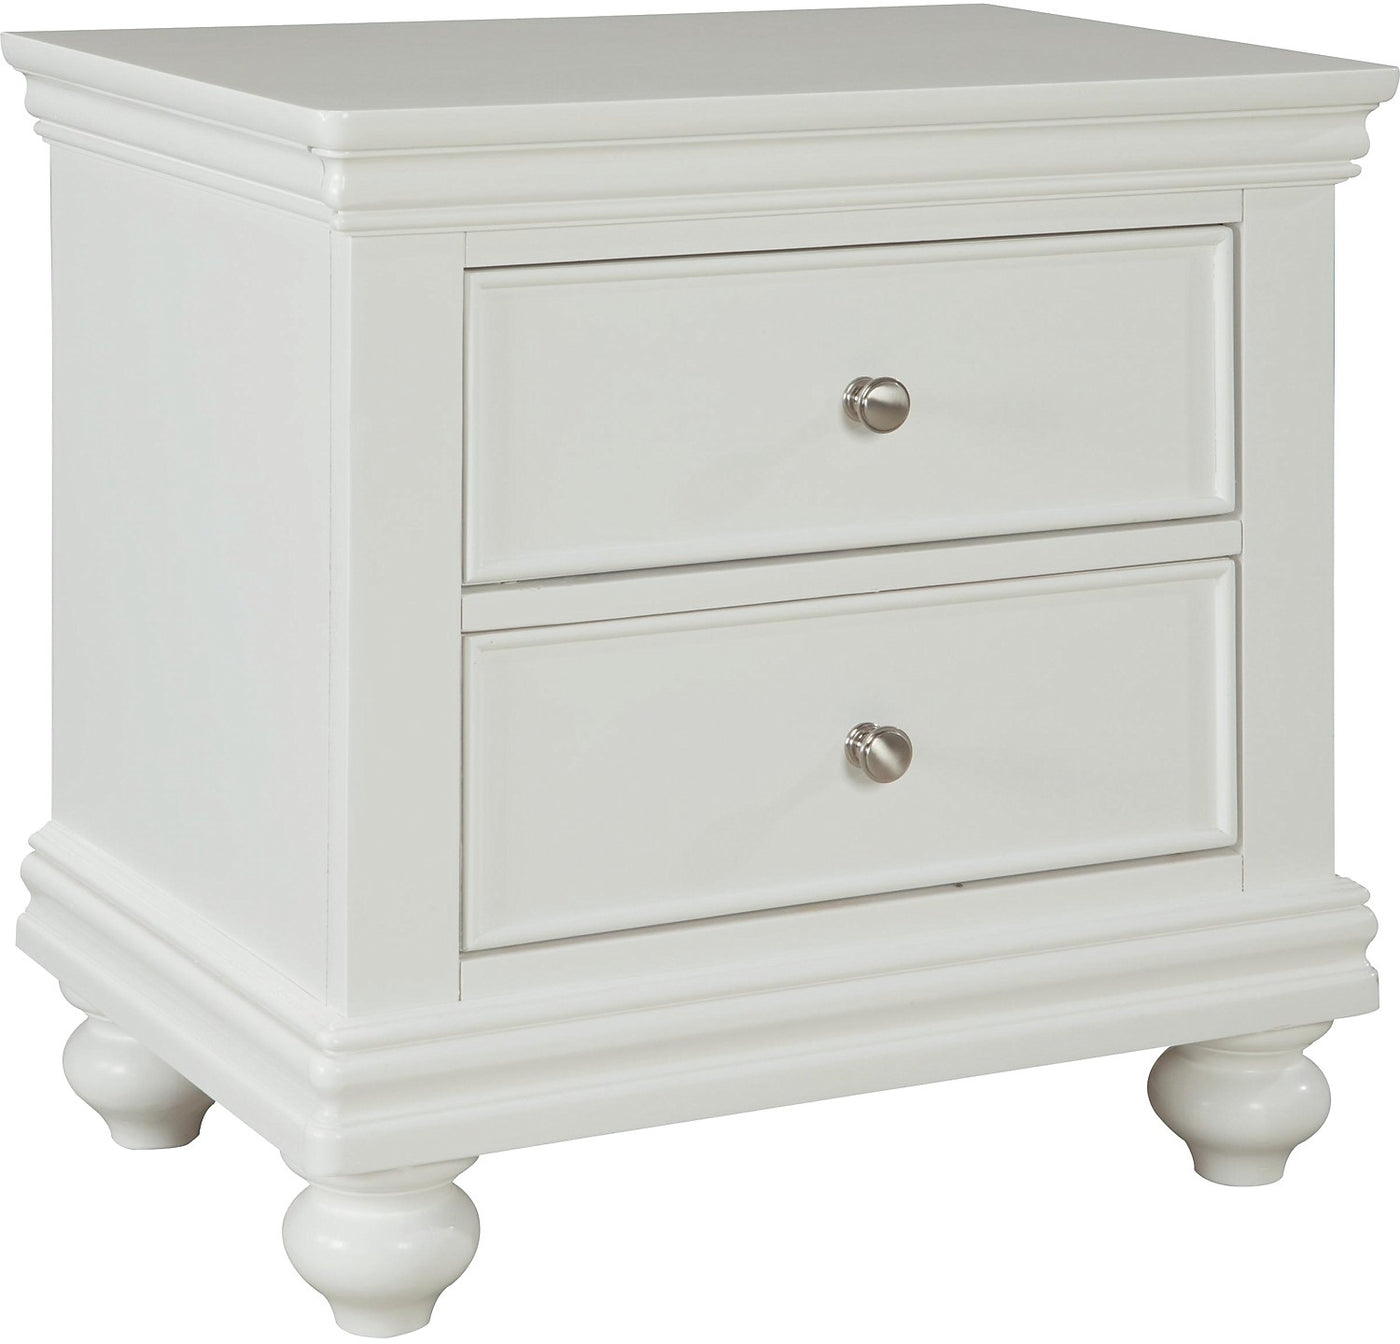 Bridgeport Nightstand White